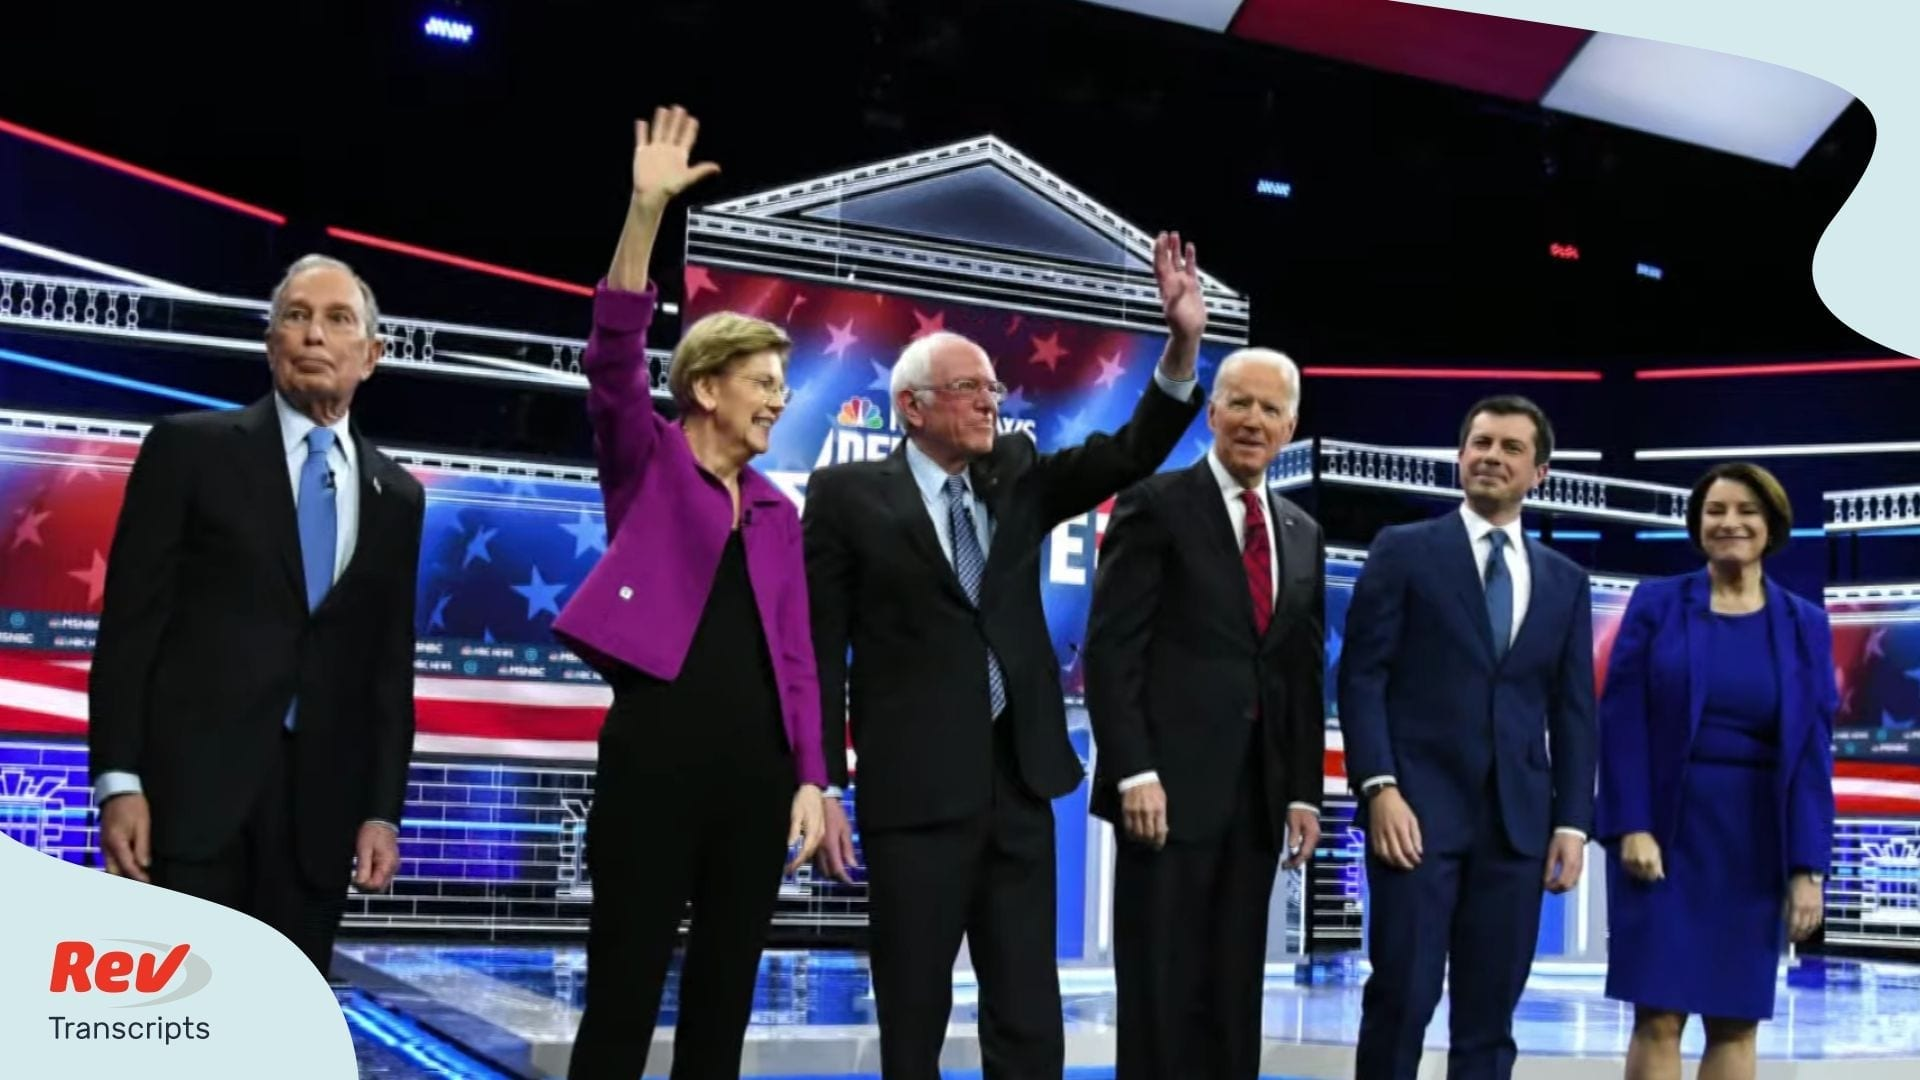 Las Vegas Nevada Democratic Debate Transcript